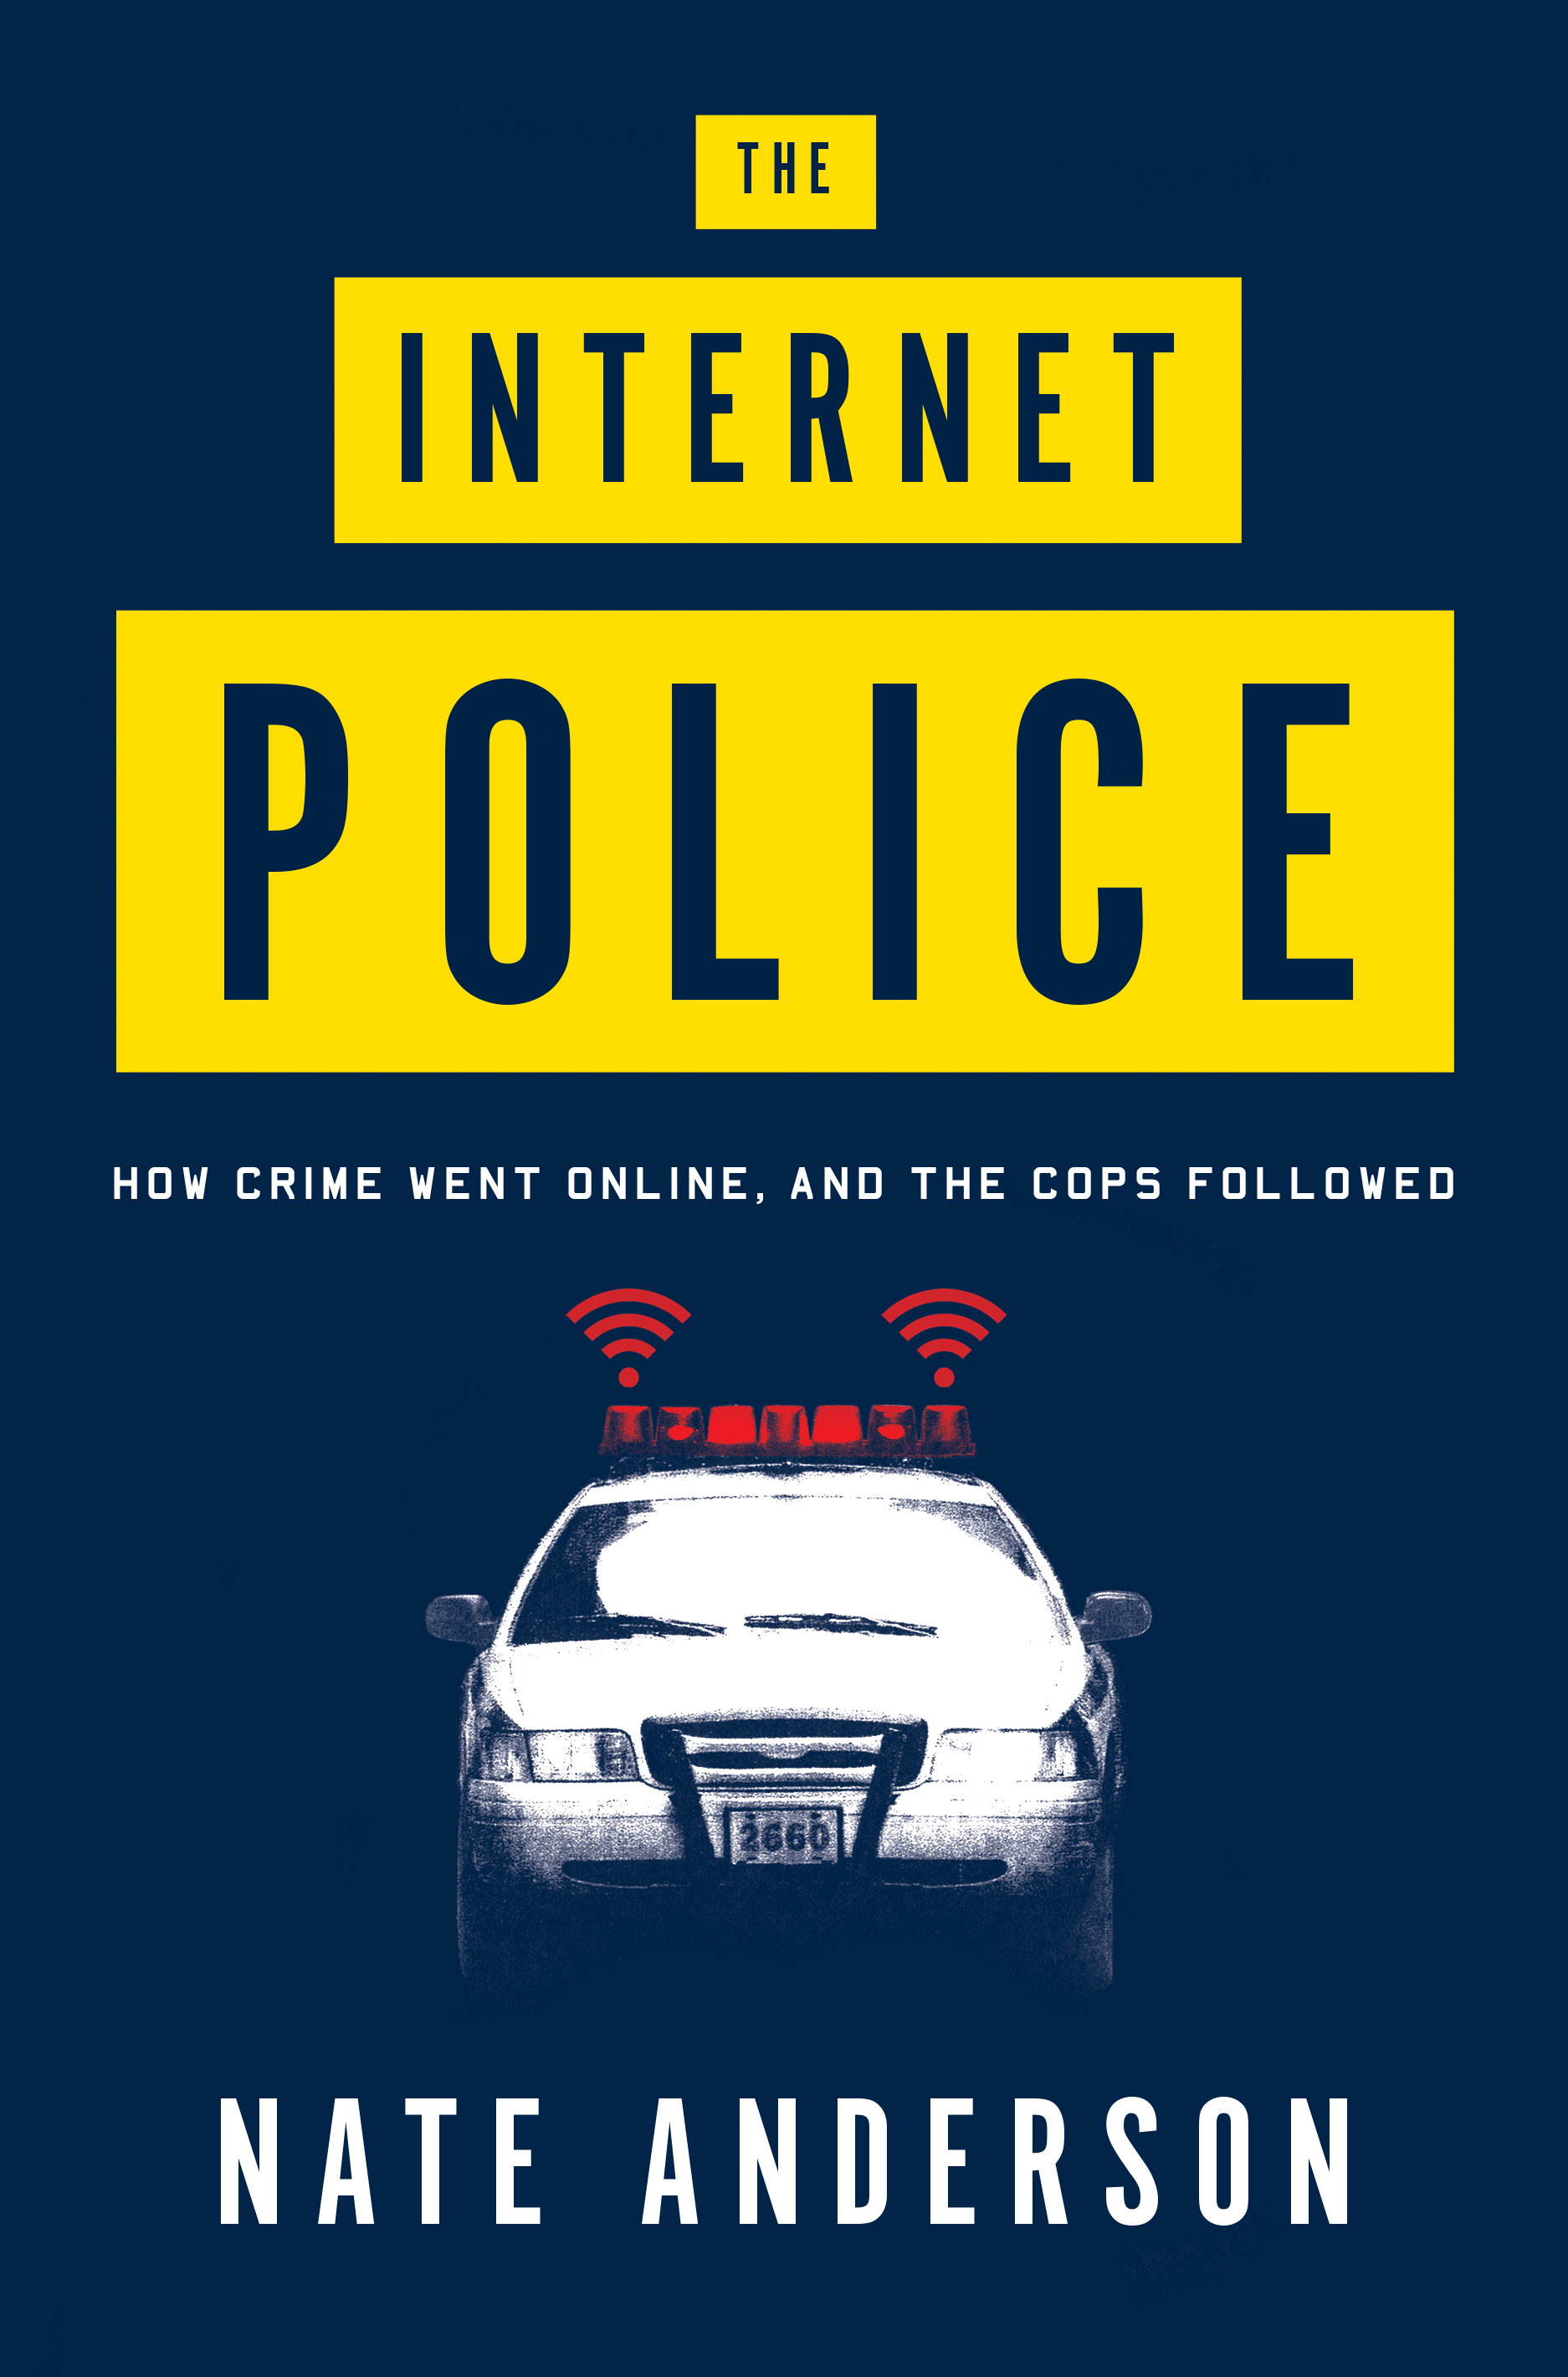 Internet Police by Nate Anderson